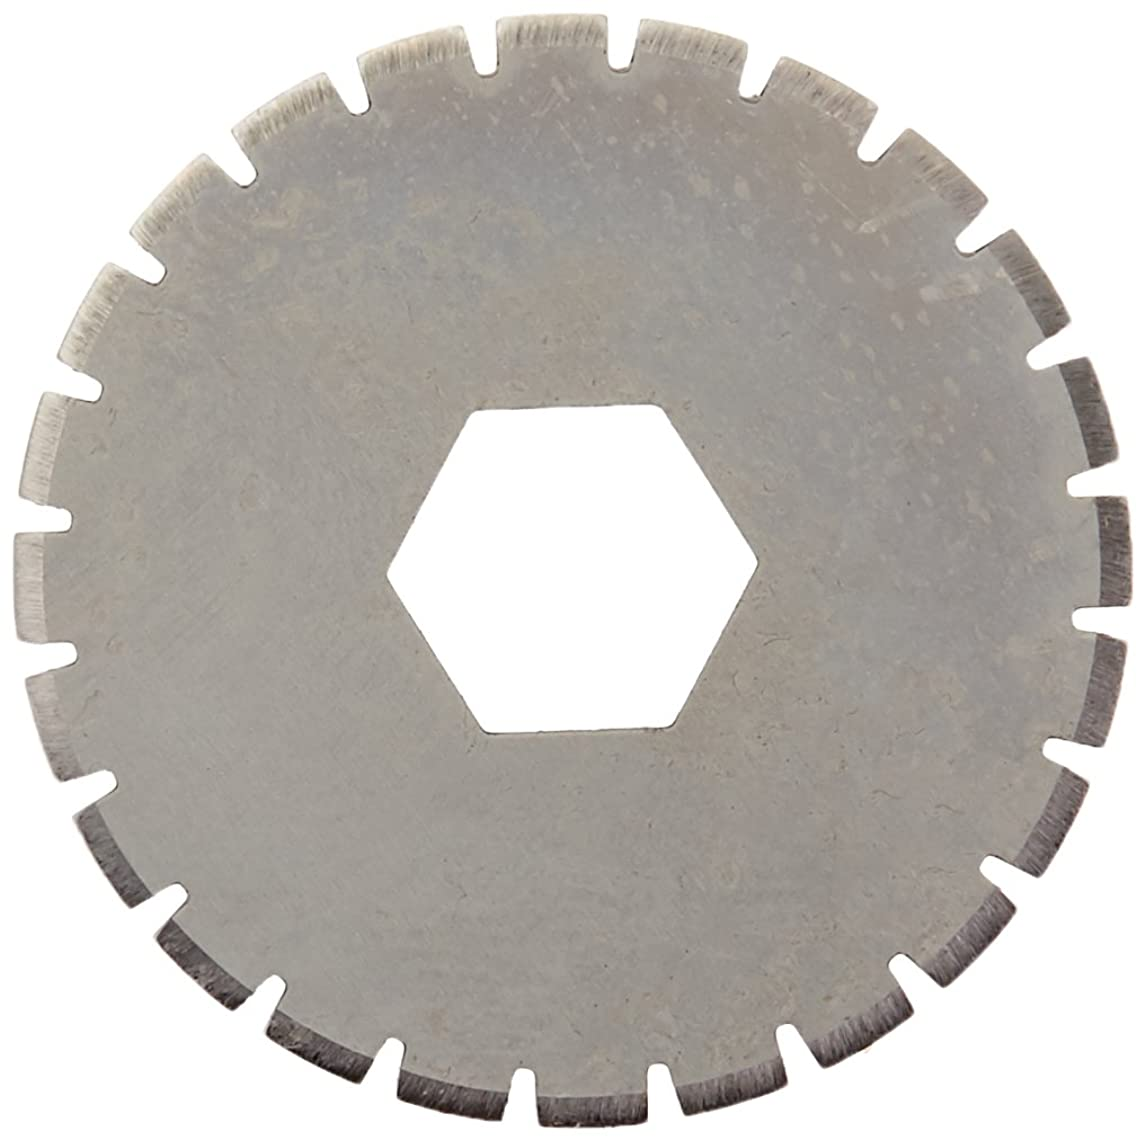 Carl K-29 Replacement Perforating Blade for The DC-210/220/238/2502 fgxr0328392711